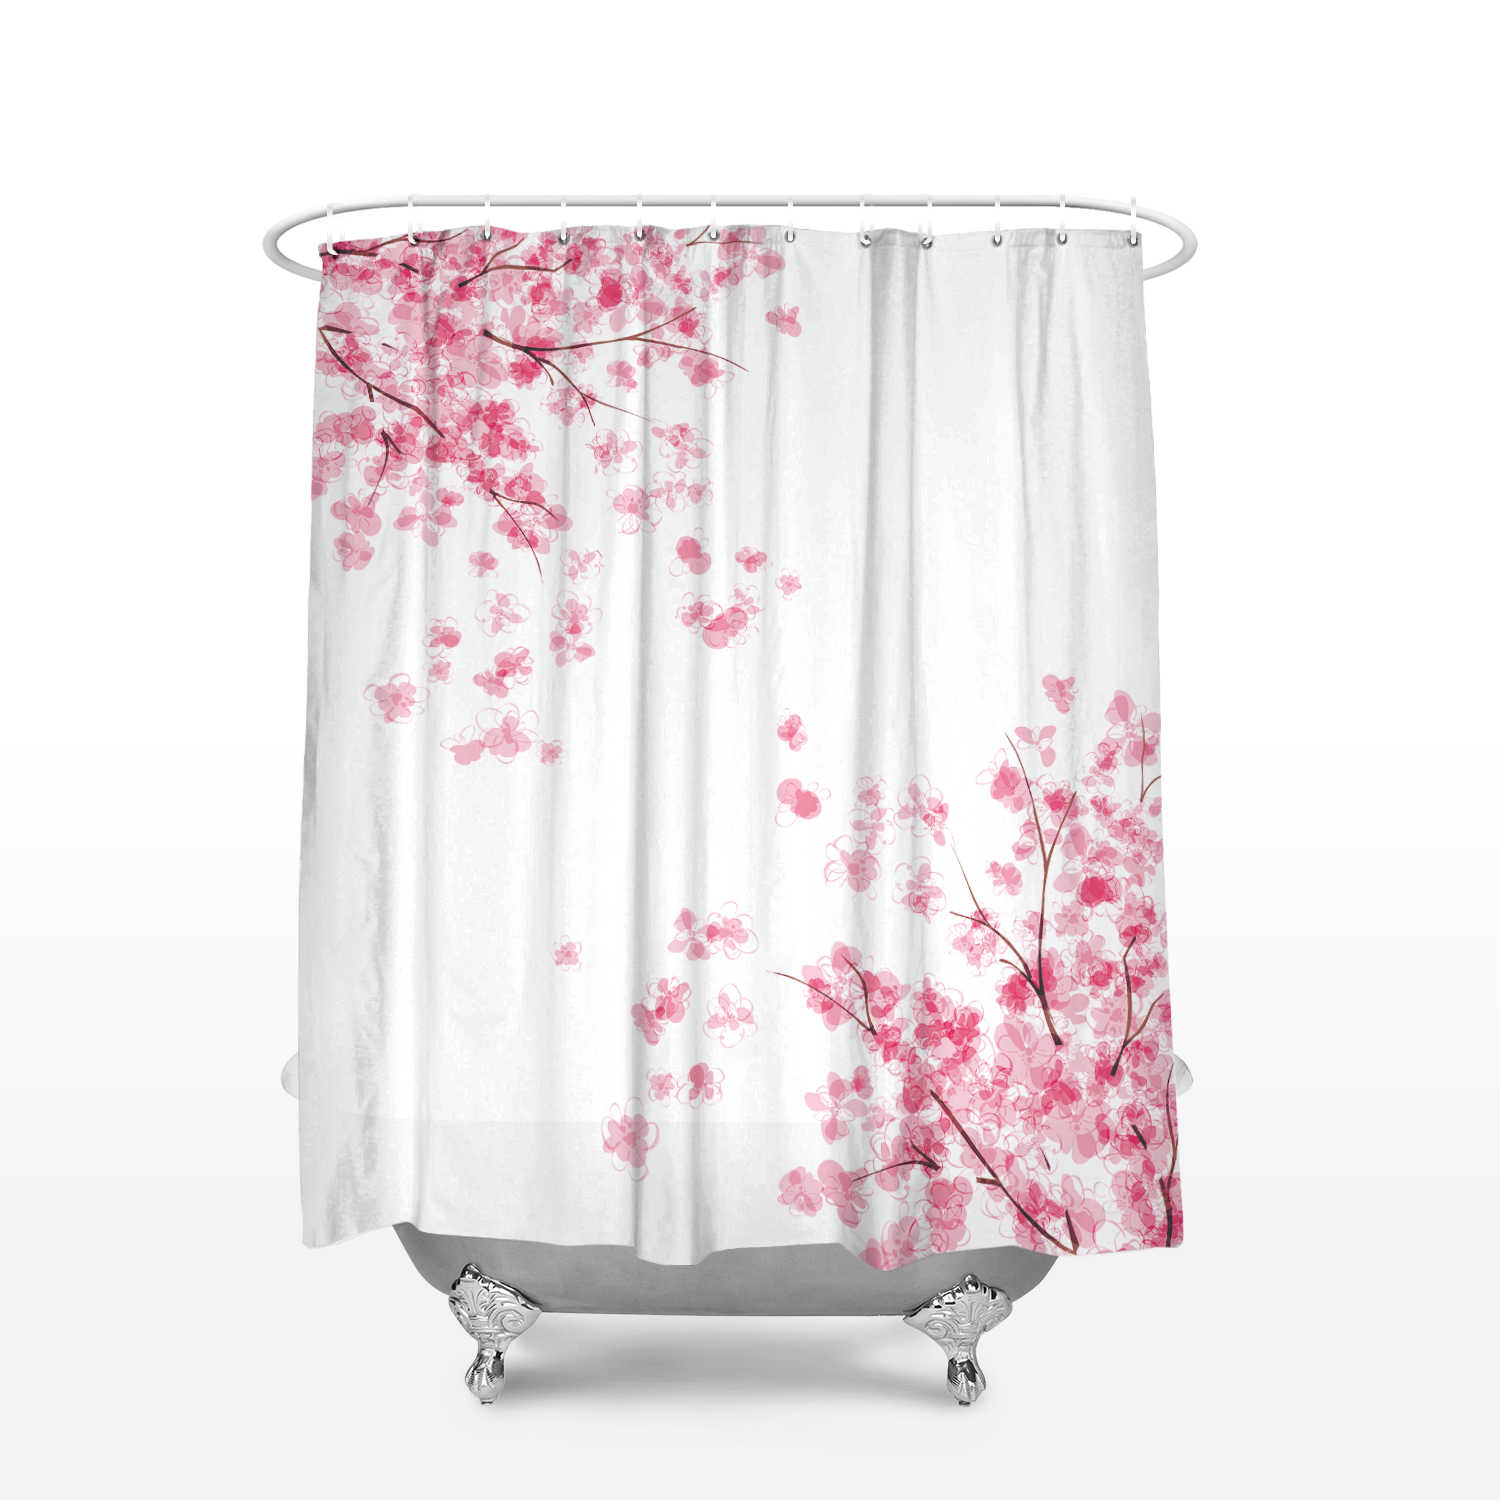 Fabric Shower Curtain Japanese Cherry Sakura Flowers Blossoms Home Decor Bathroom Accessories Waterproof Polyester Bath Curtains